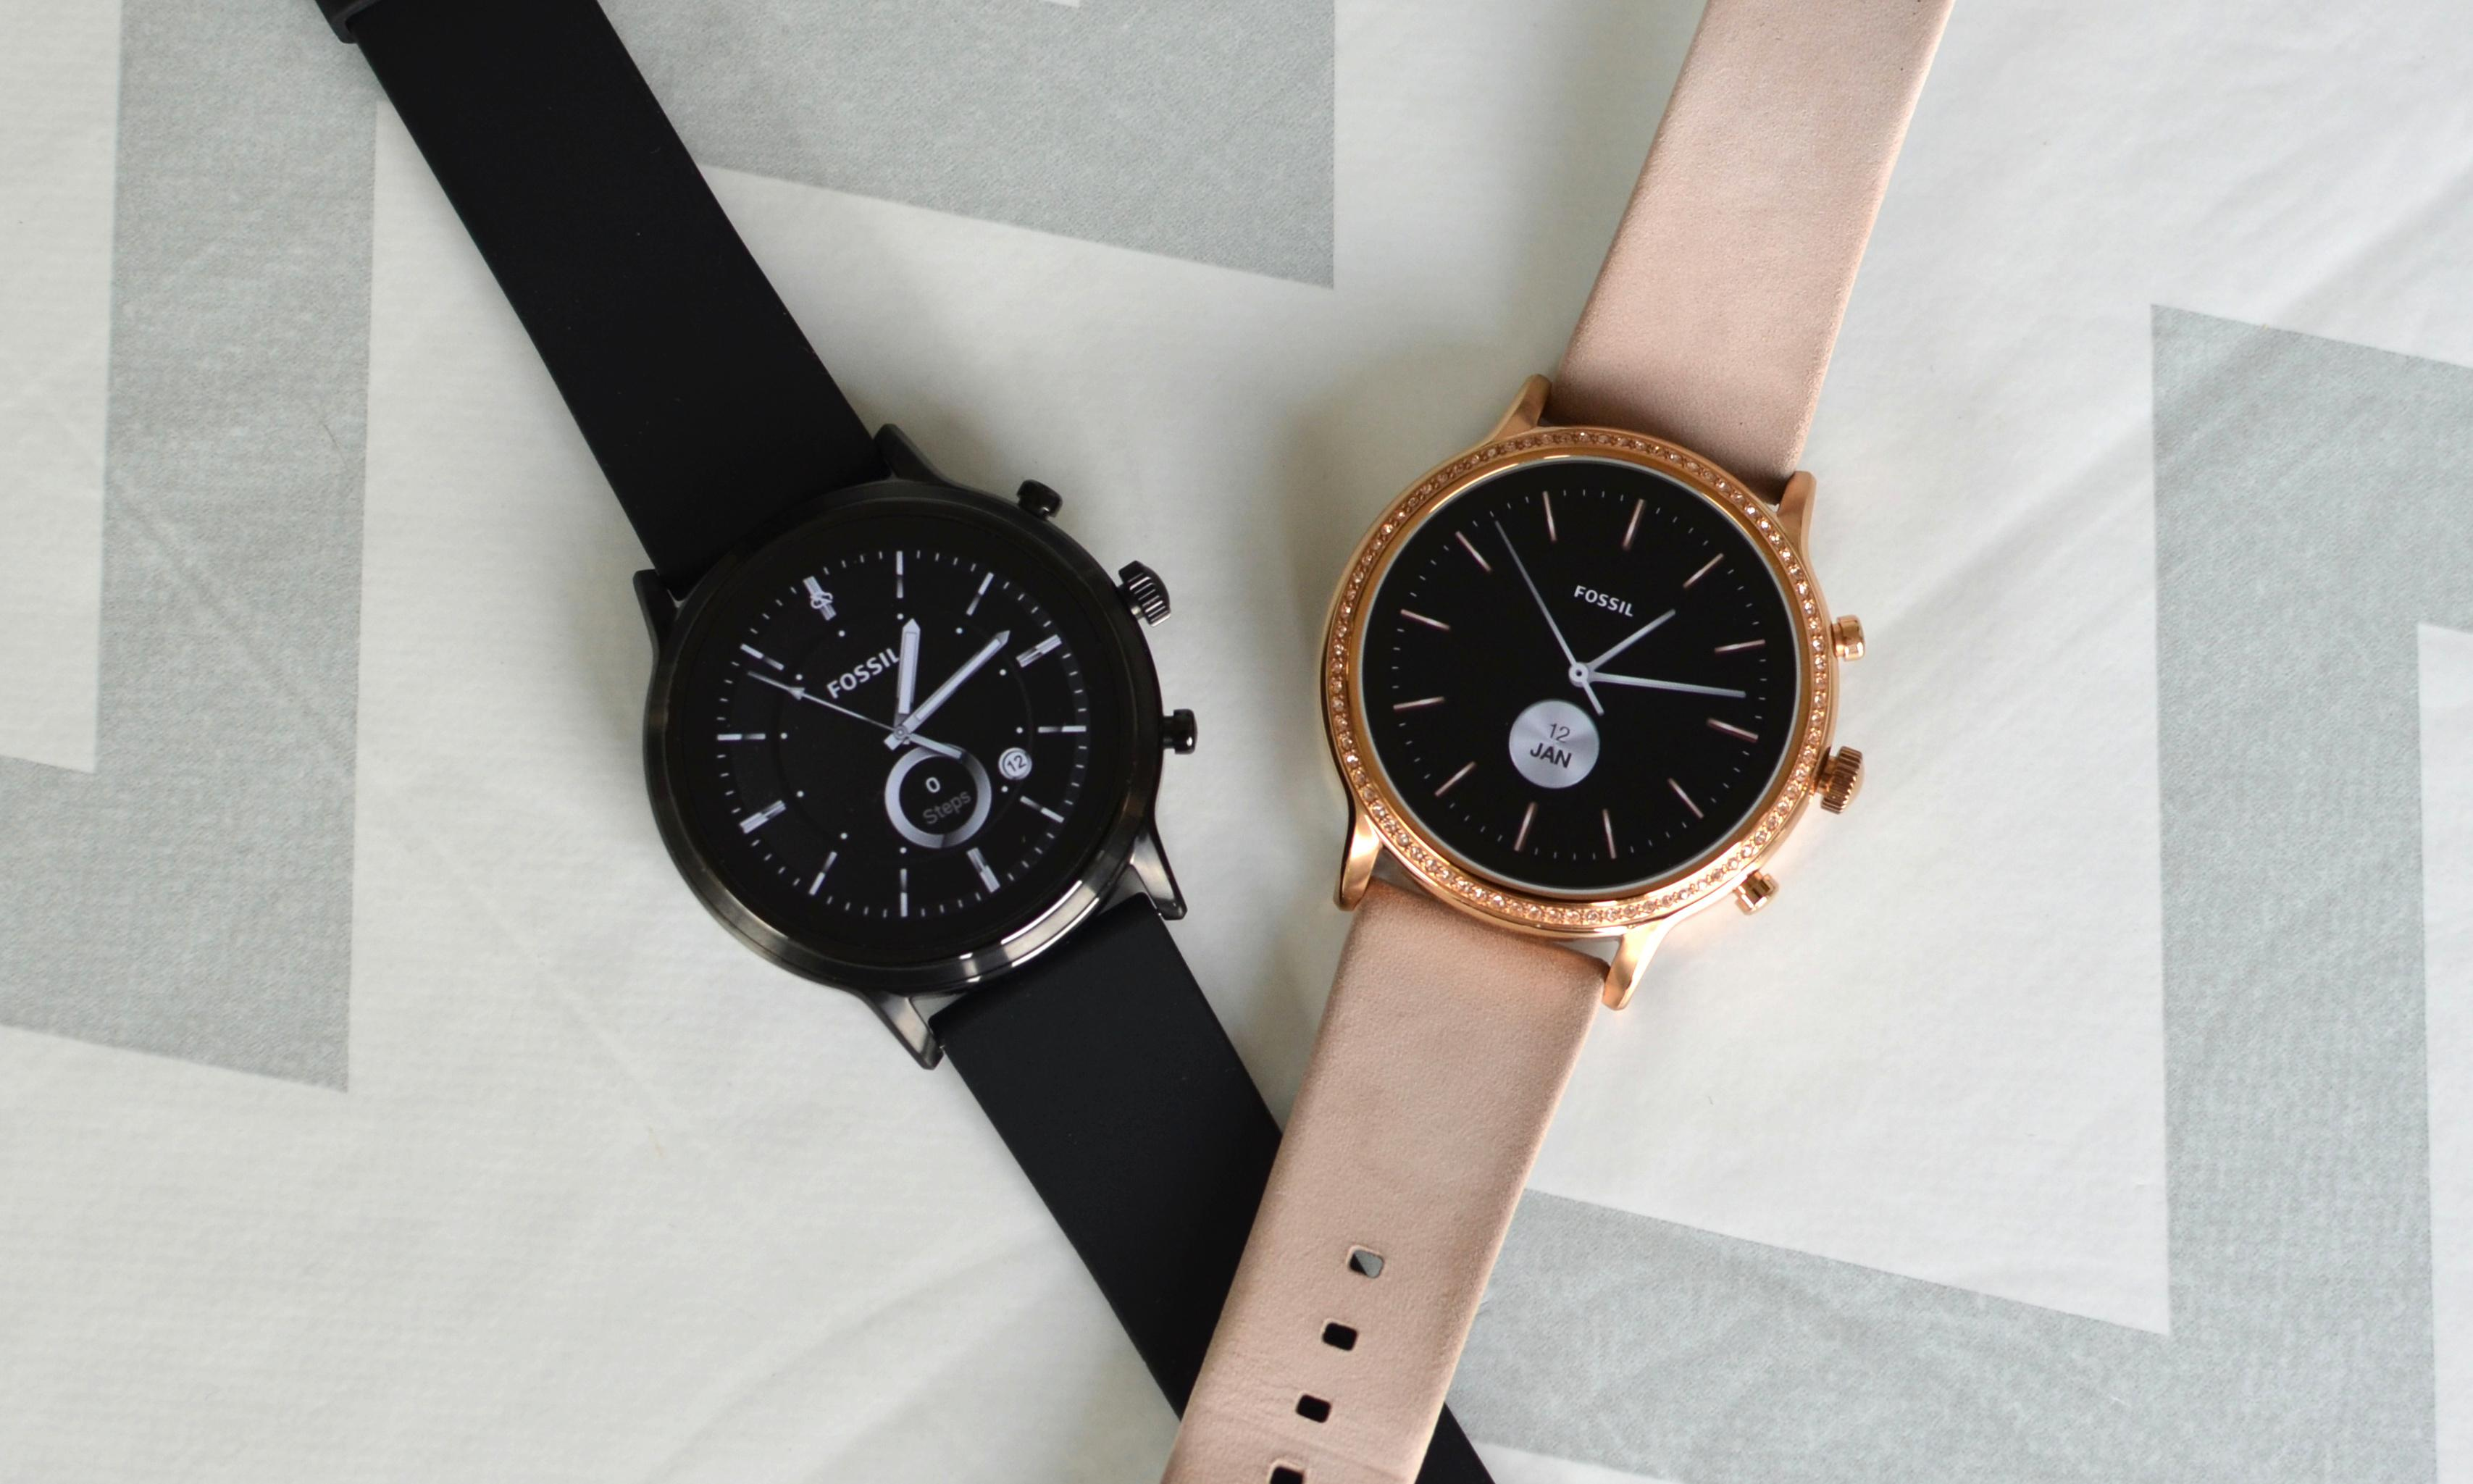 Fossil Gen 5 review: Google's Wear OS smartwatch at its best